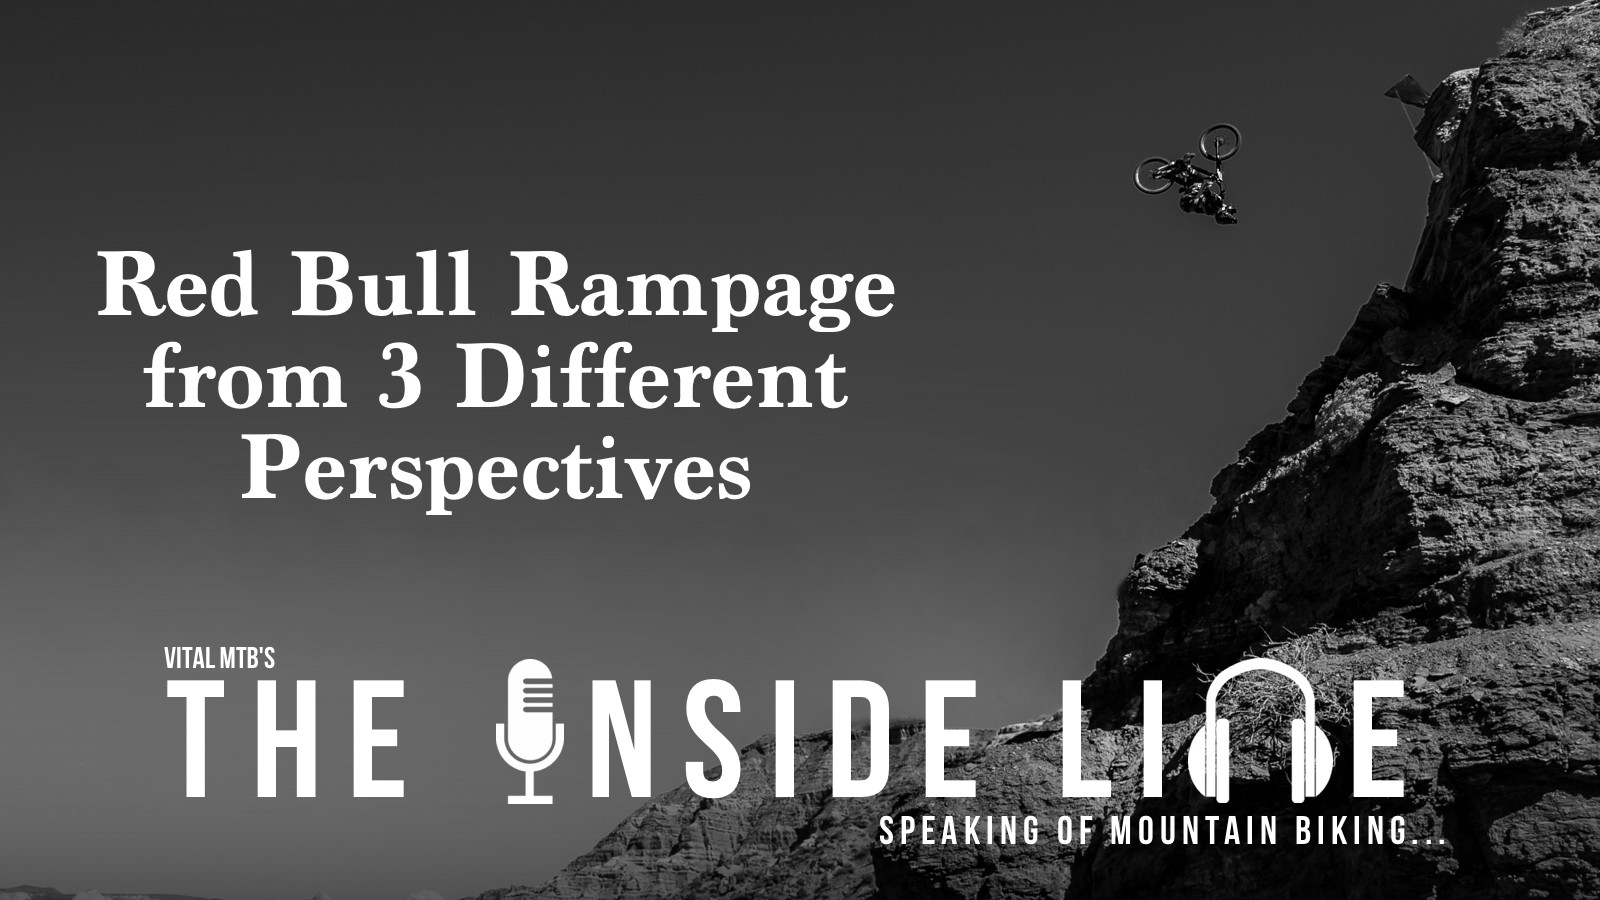 The Inside Line Podcast - Red Bull Rampage from 3 Different Perspectives